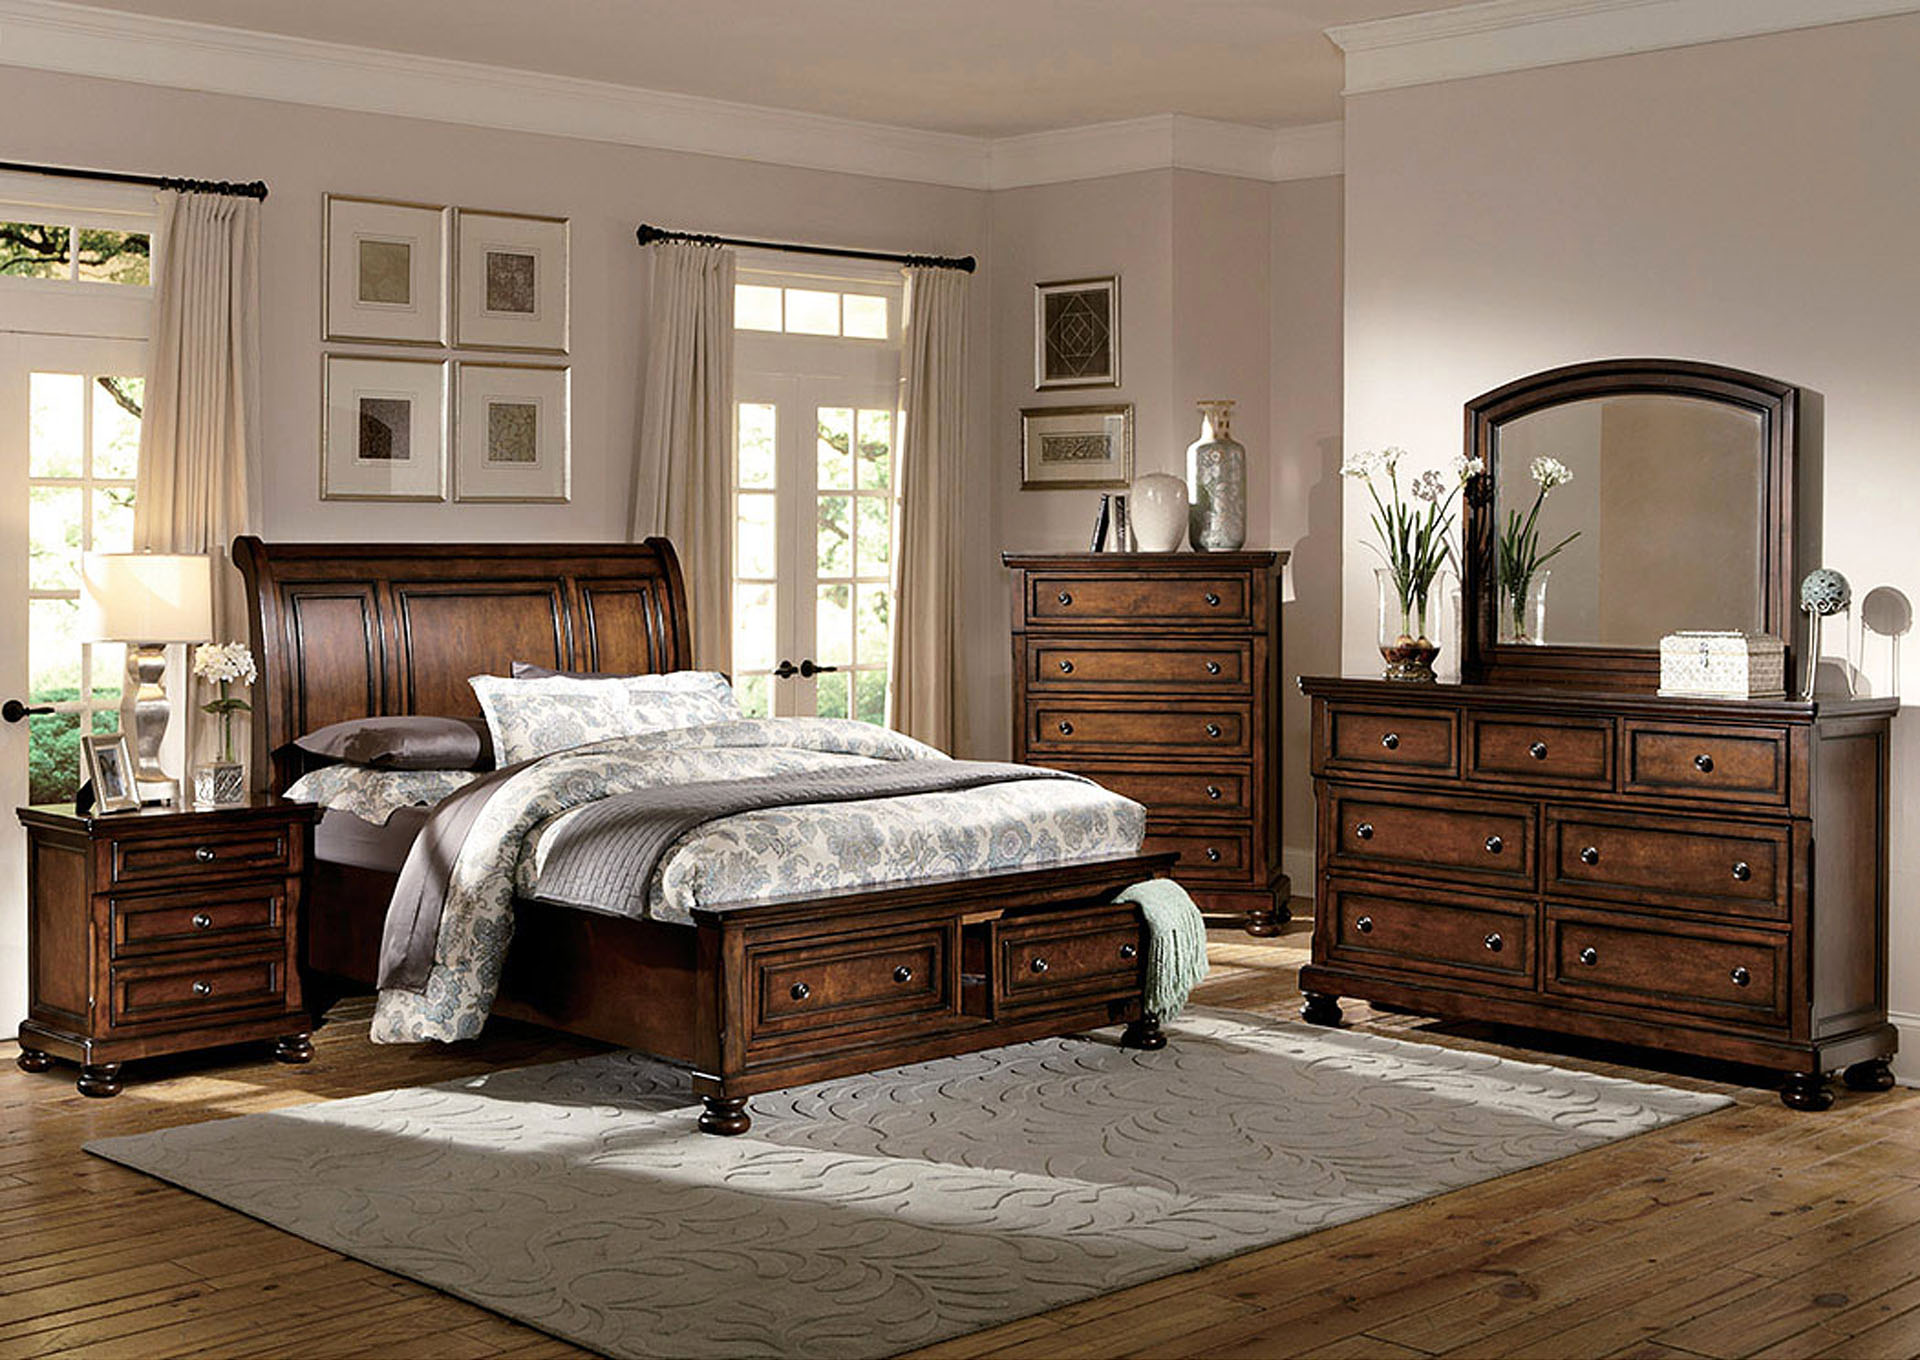 Cumberland Medium Brown Queen Storage Bed w/ Dresser, Mirror, and Nightstand,Homelegance